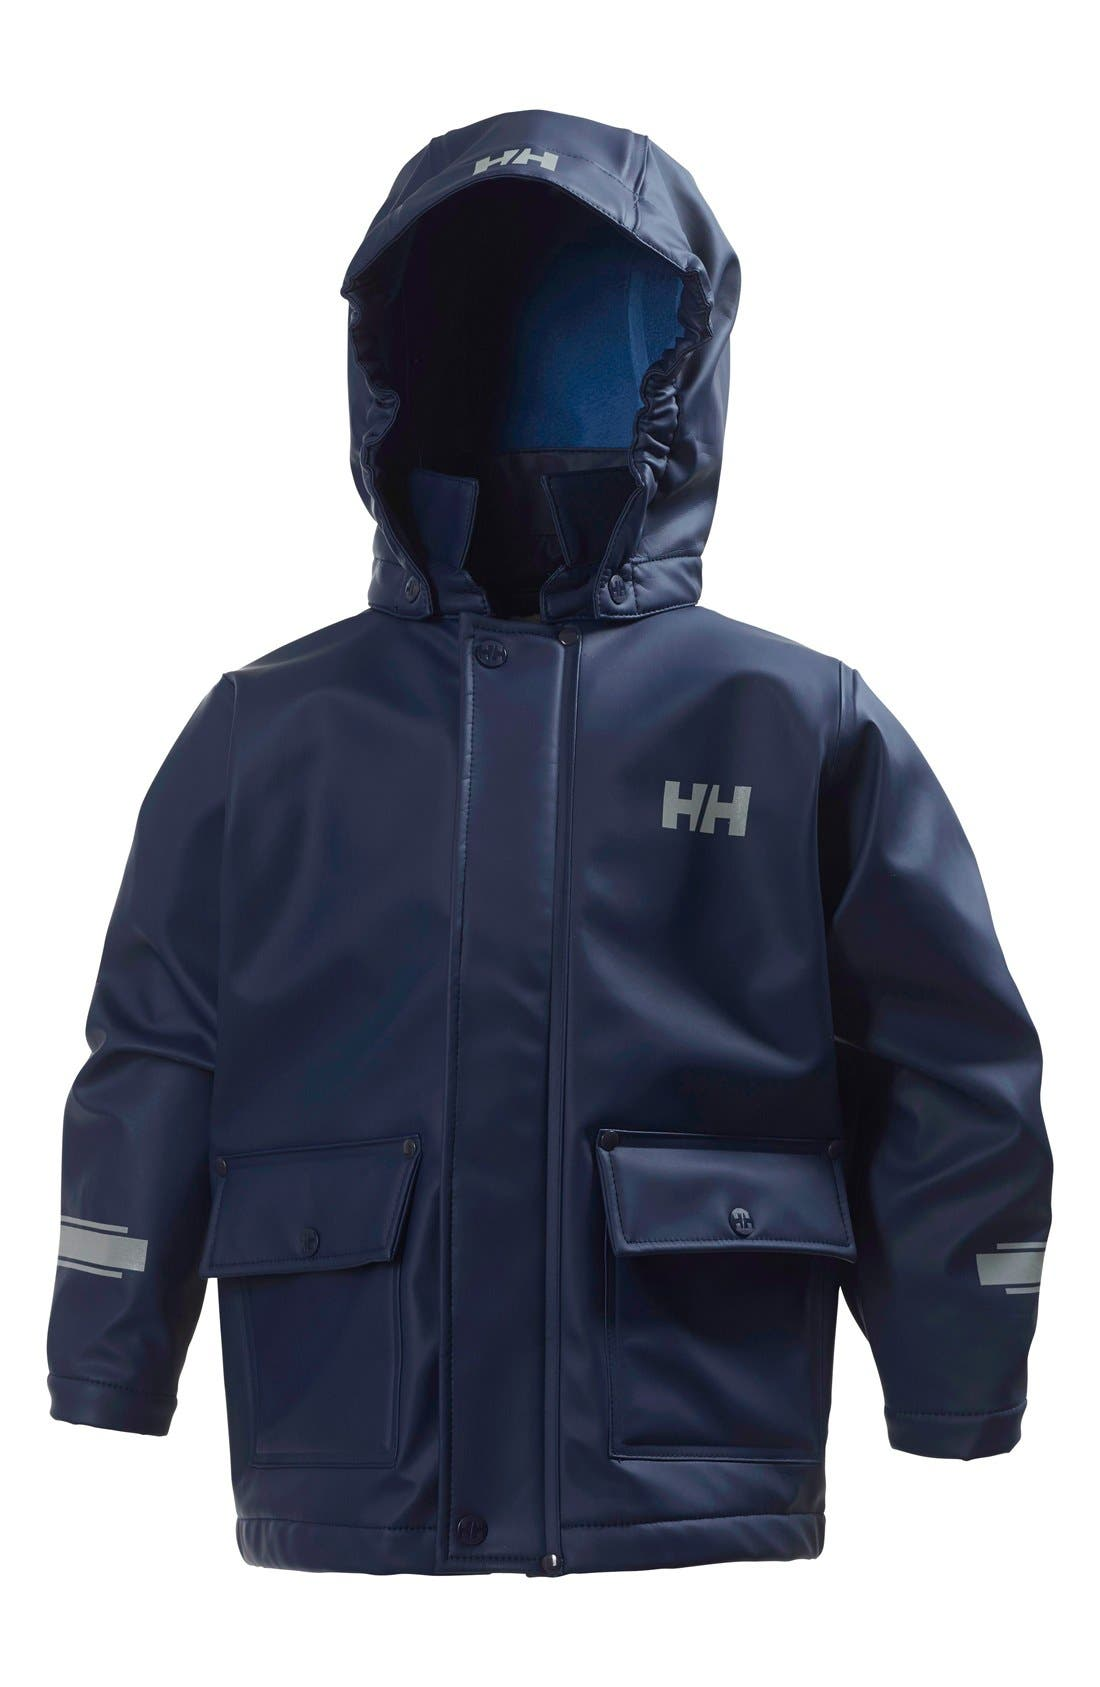 Alternate Image 1 Selected - Helly Hansen Juell Hooded Waterproof Jacket (Toddler Boys & Little Boys)